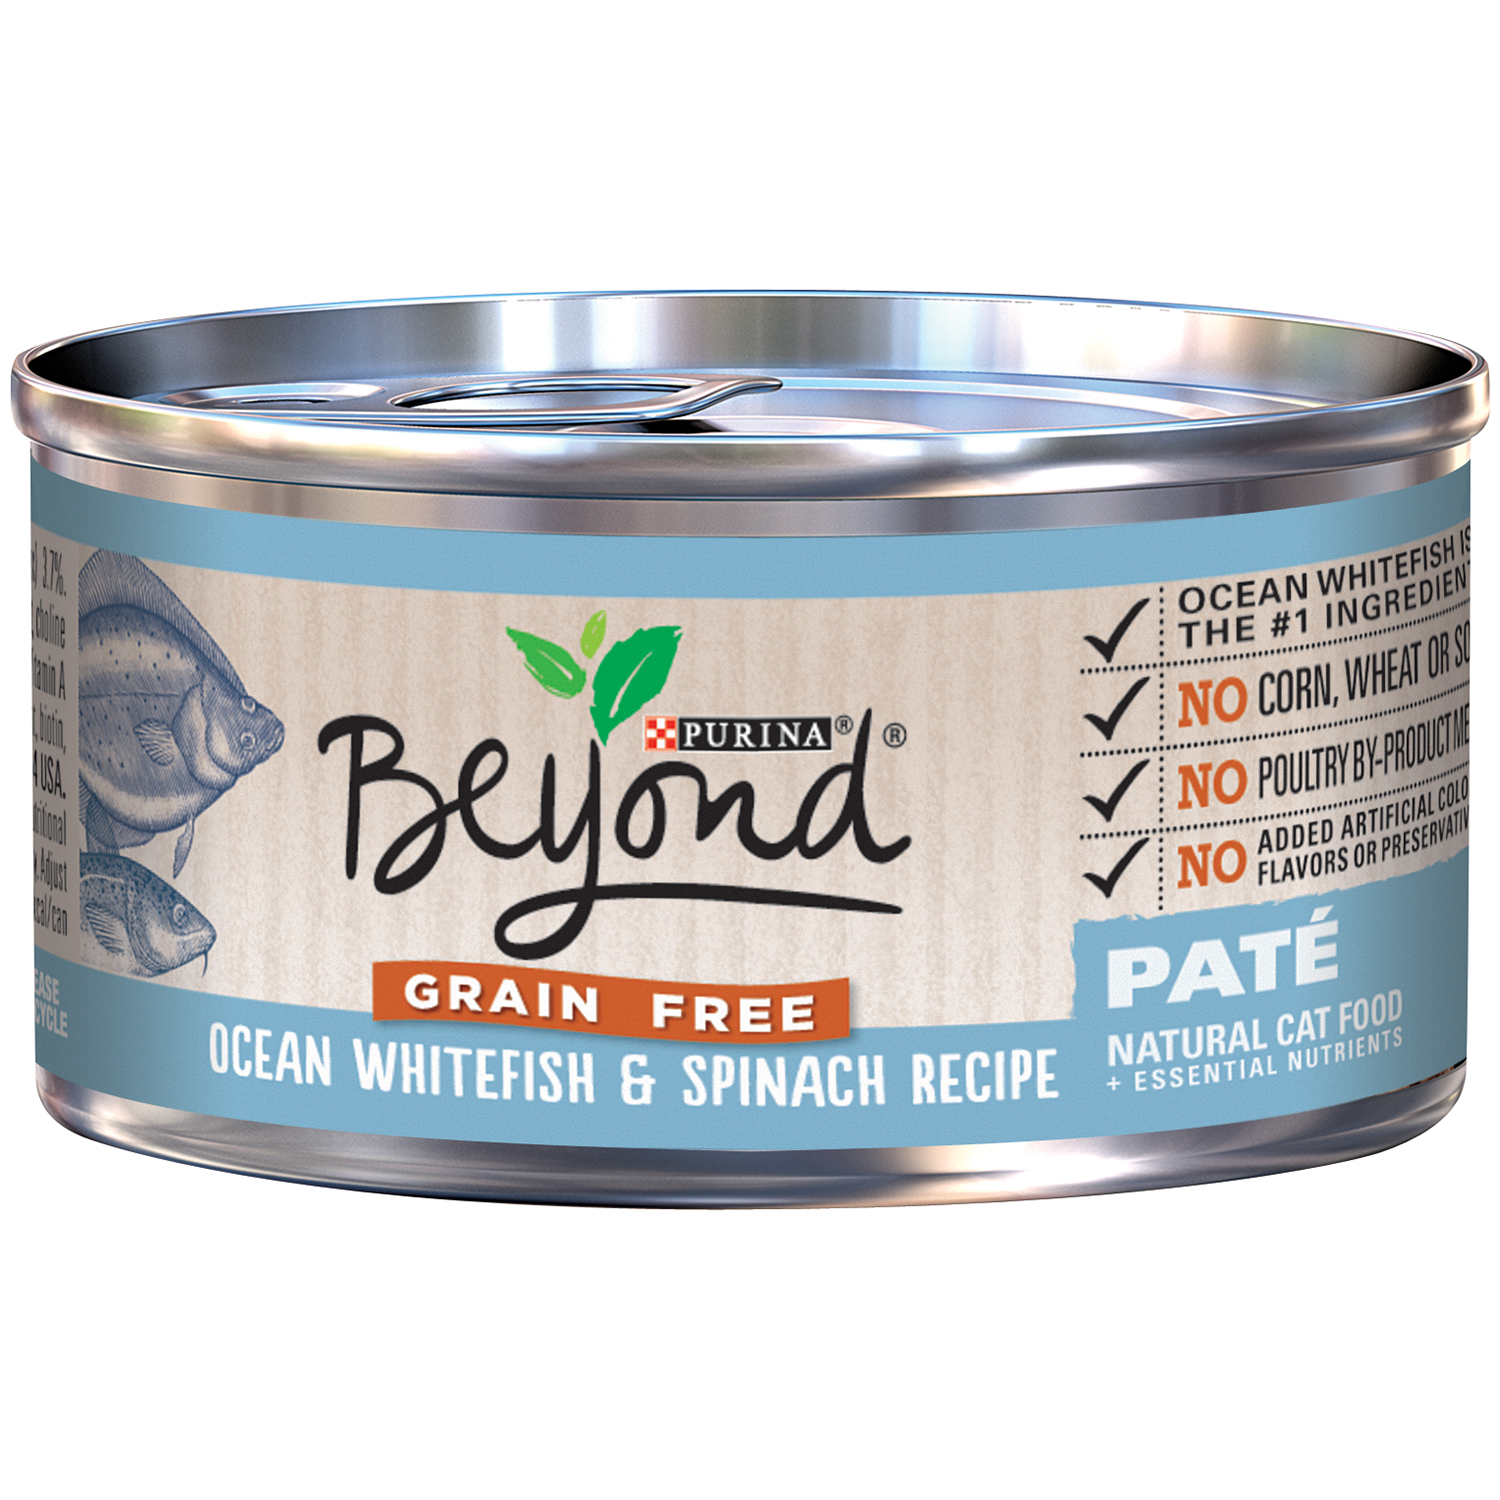 Purina Beyond Grain Free Ocean Whitefish & Spinach Recipe Pate Cat Food 3 oz. Can